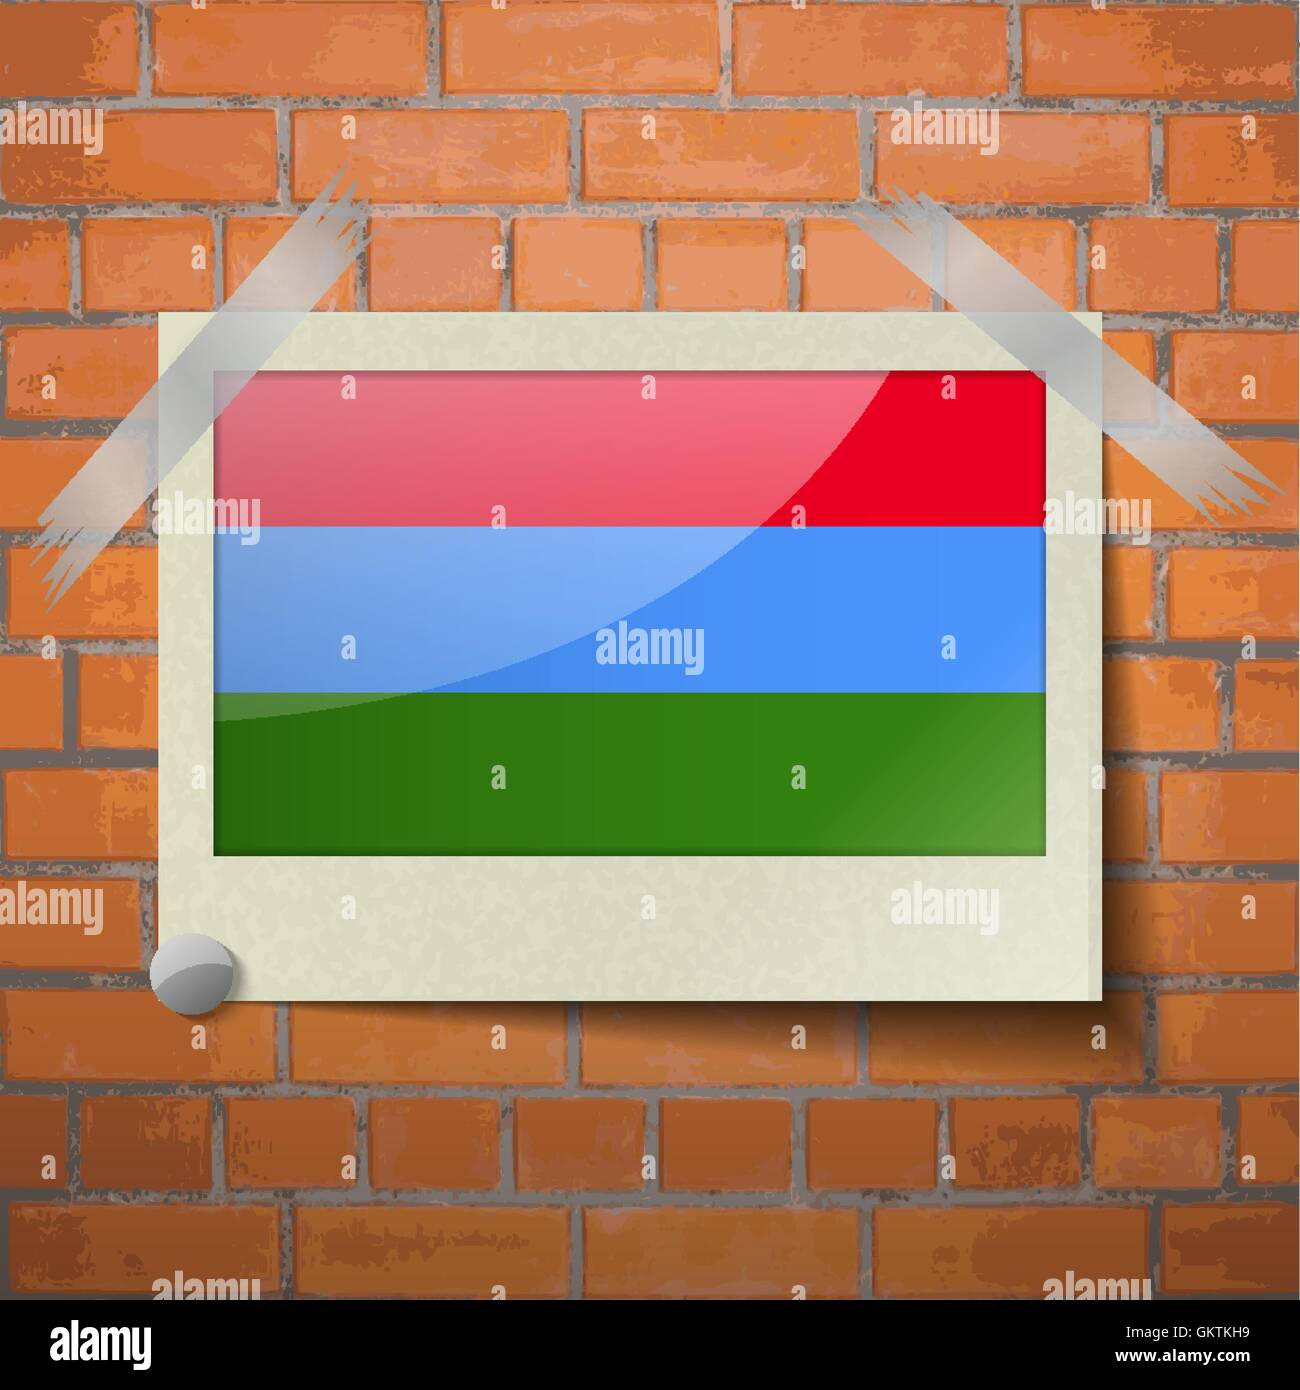 Flags Karelia scotch taped to a red brick wall - Stock Image